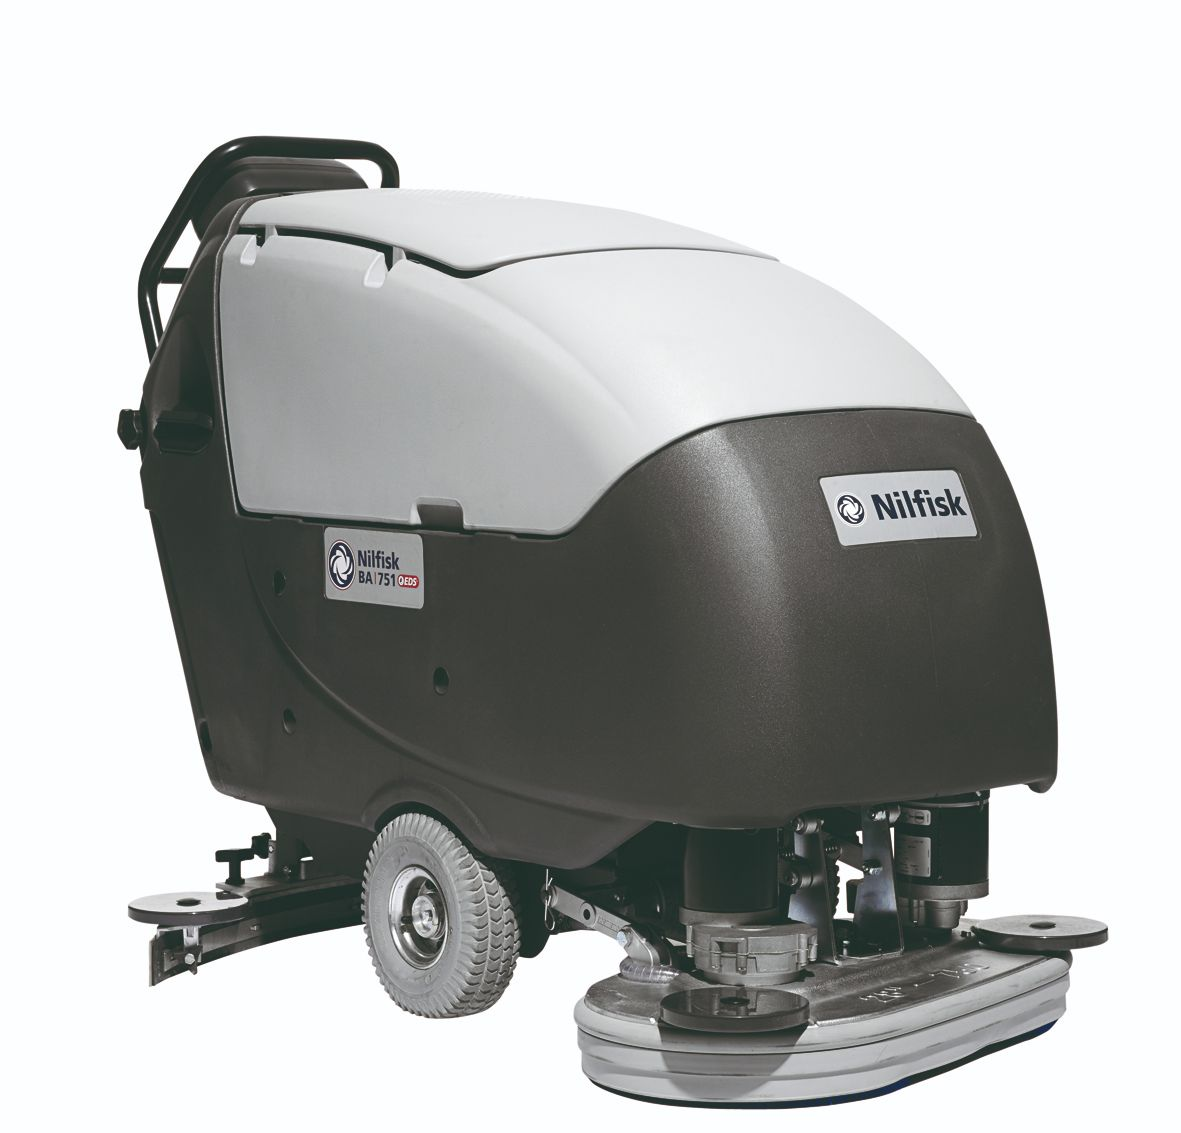 Nilfisk BA651 Scrubber Dryer